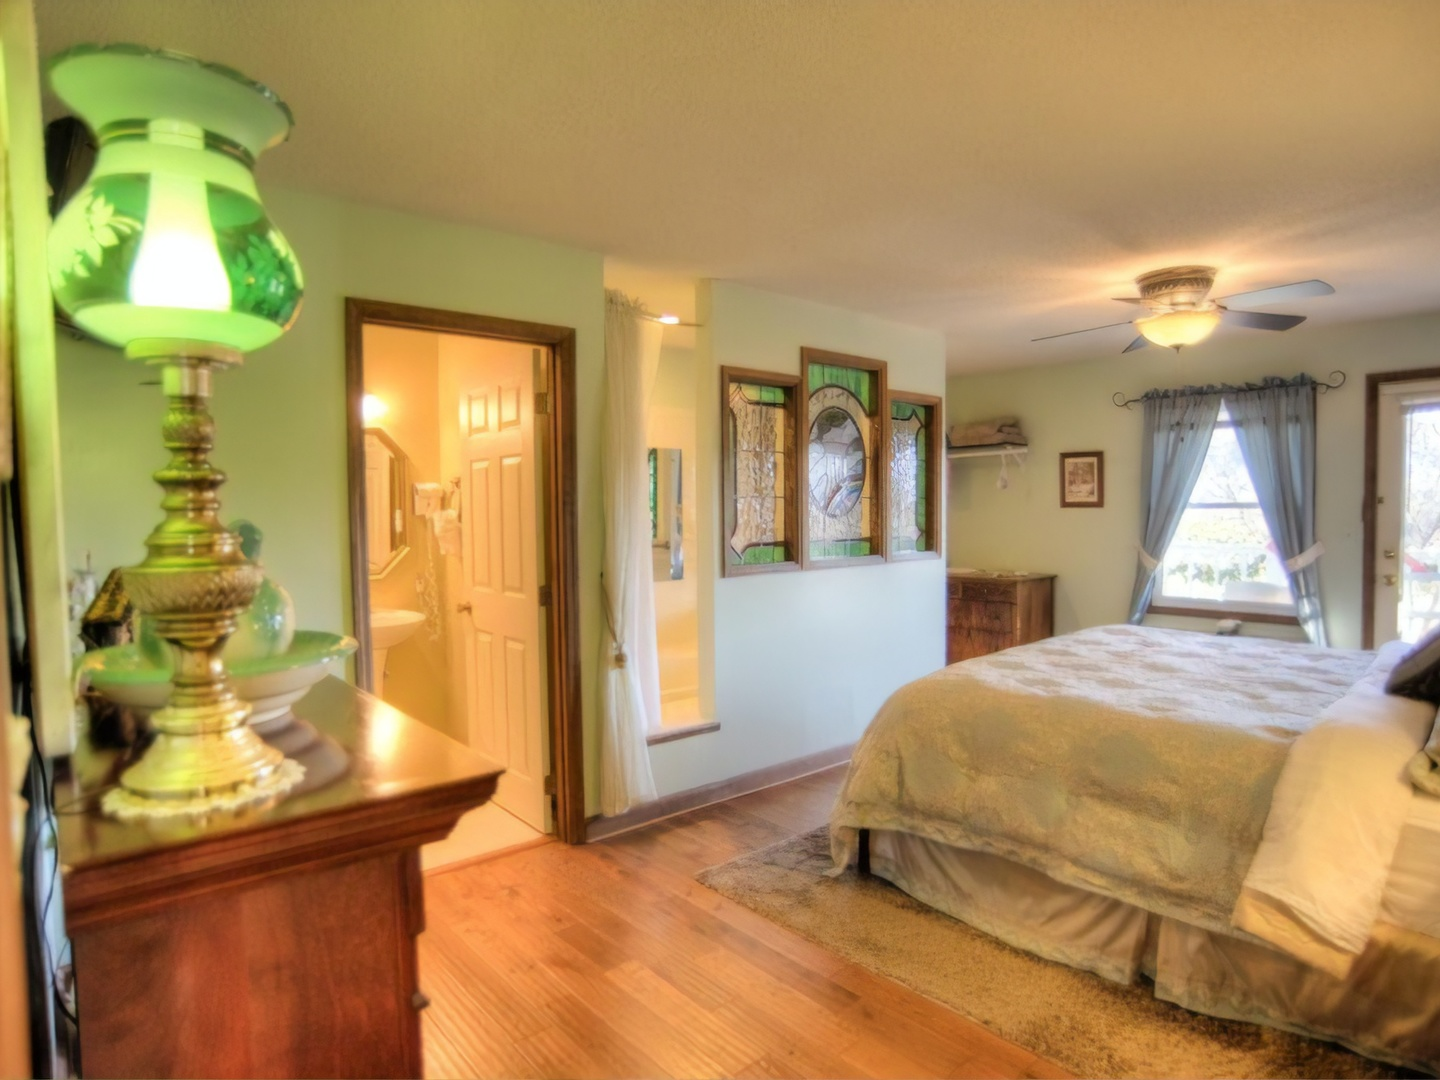 A bedroom with a bed and a mirror at Blue Mountain Mist Country Inn and Cottages.